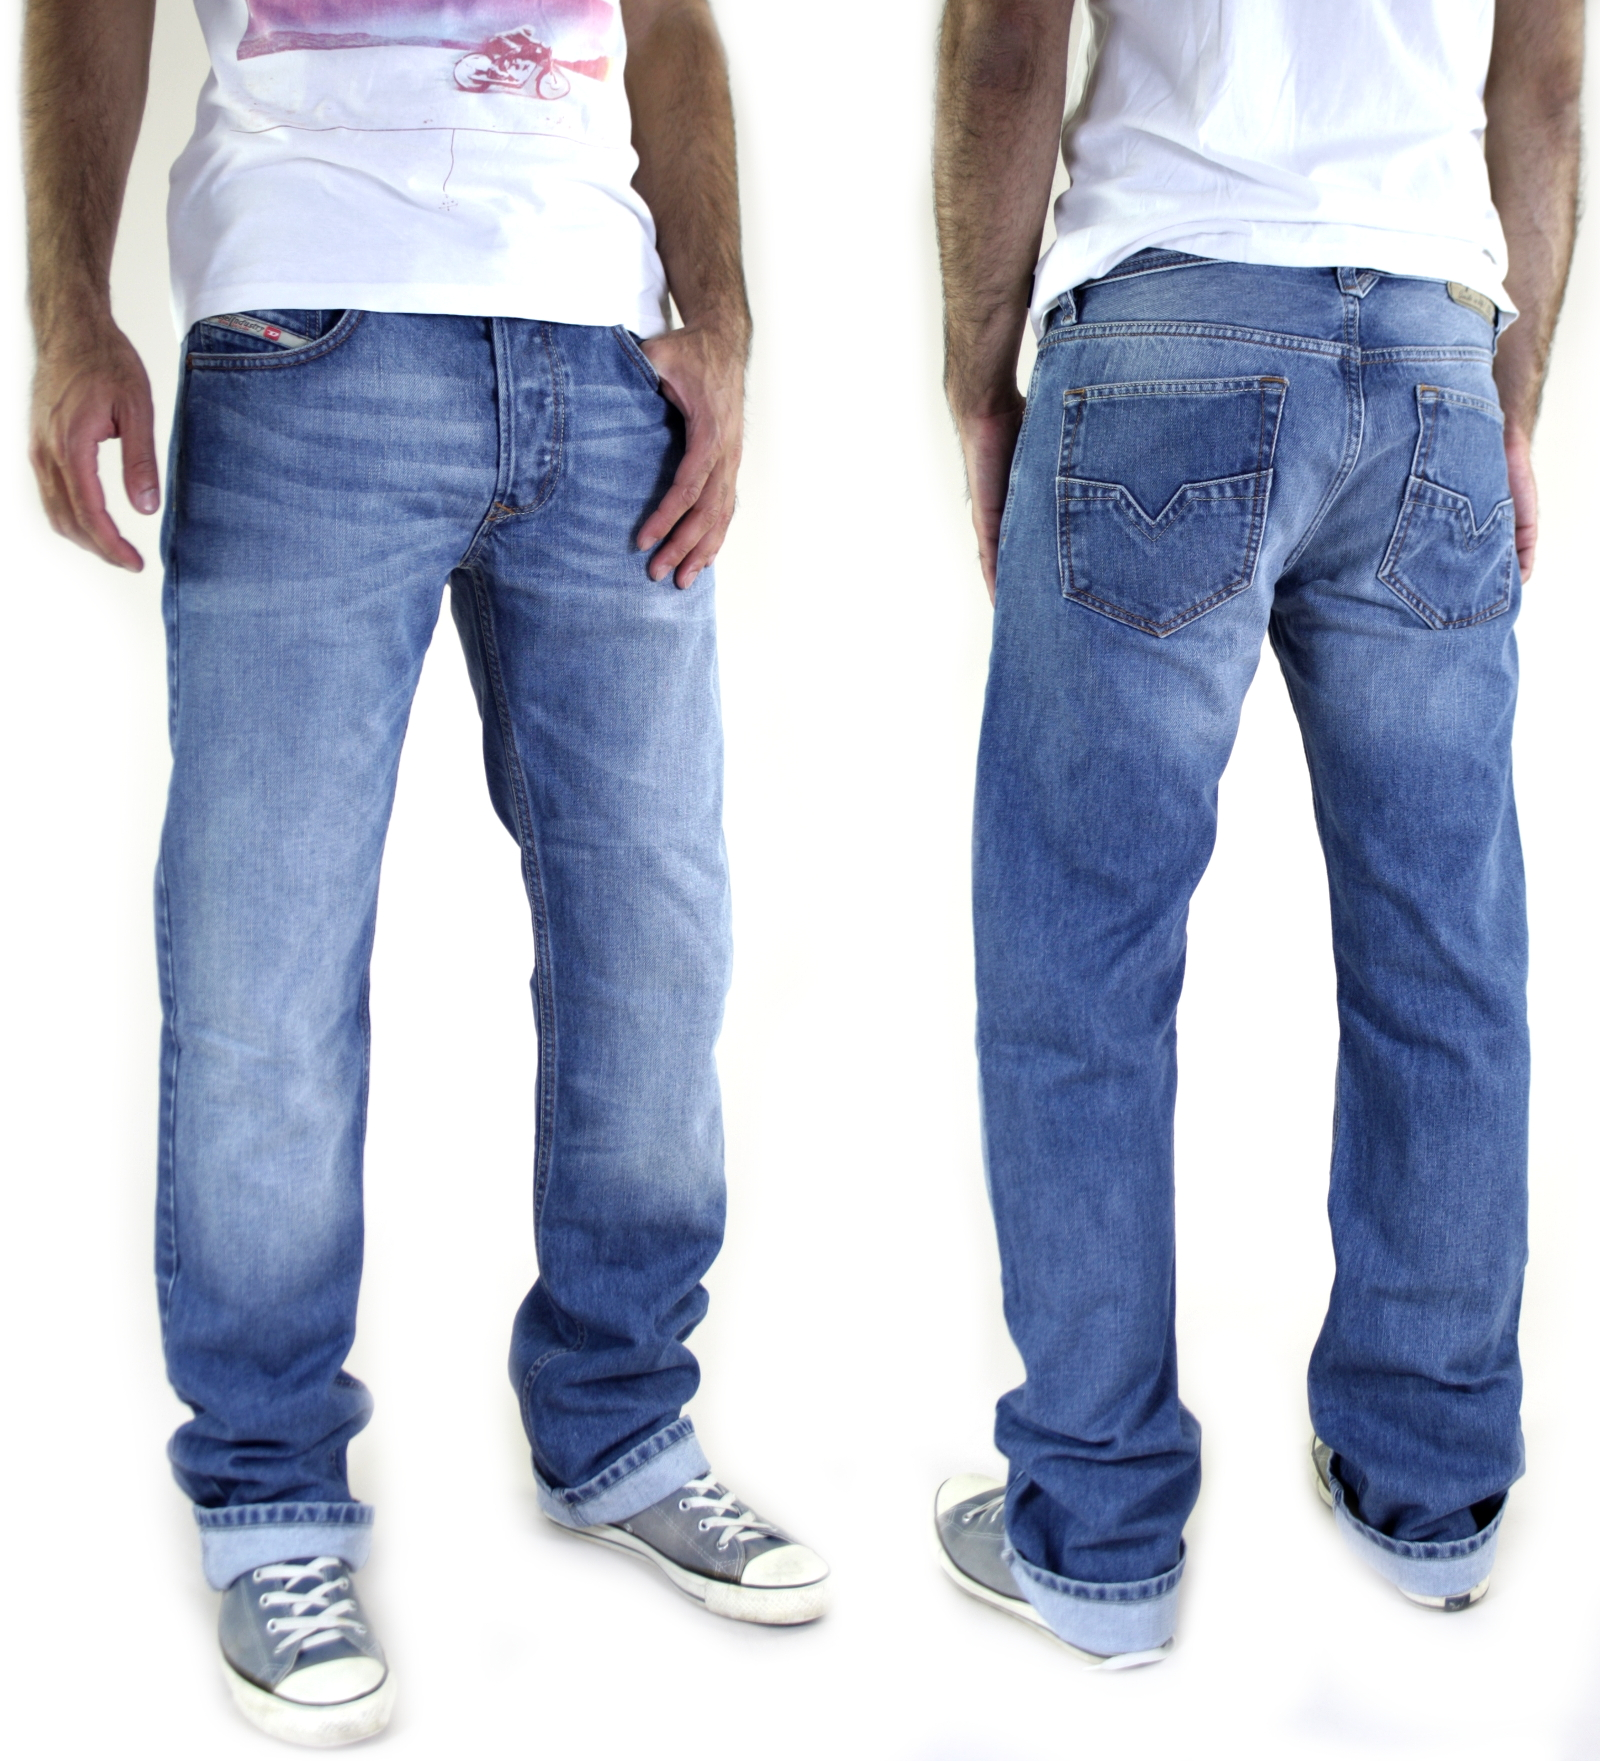 The Perfect Pair - %color %size Jeans on Sale